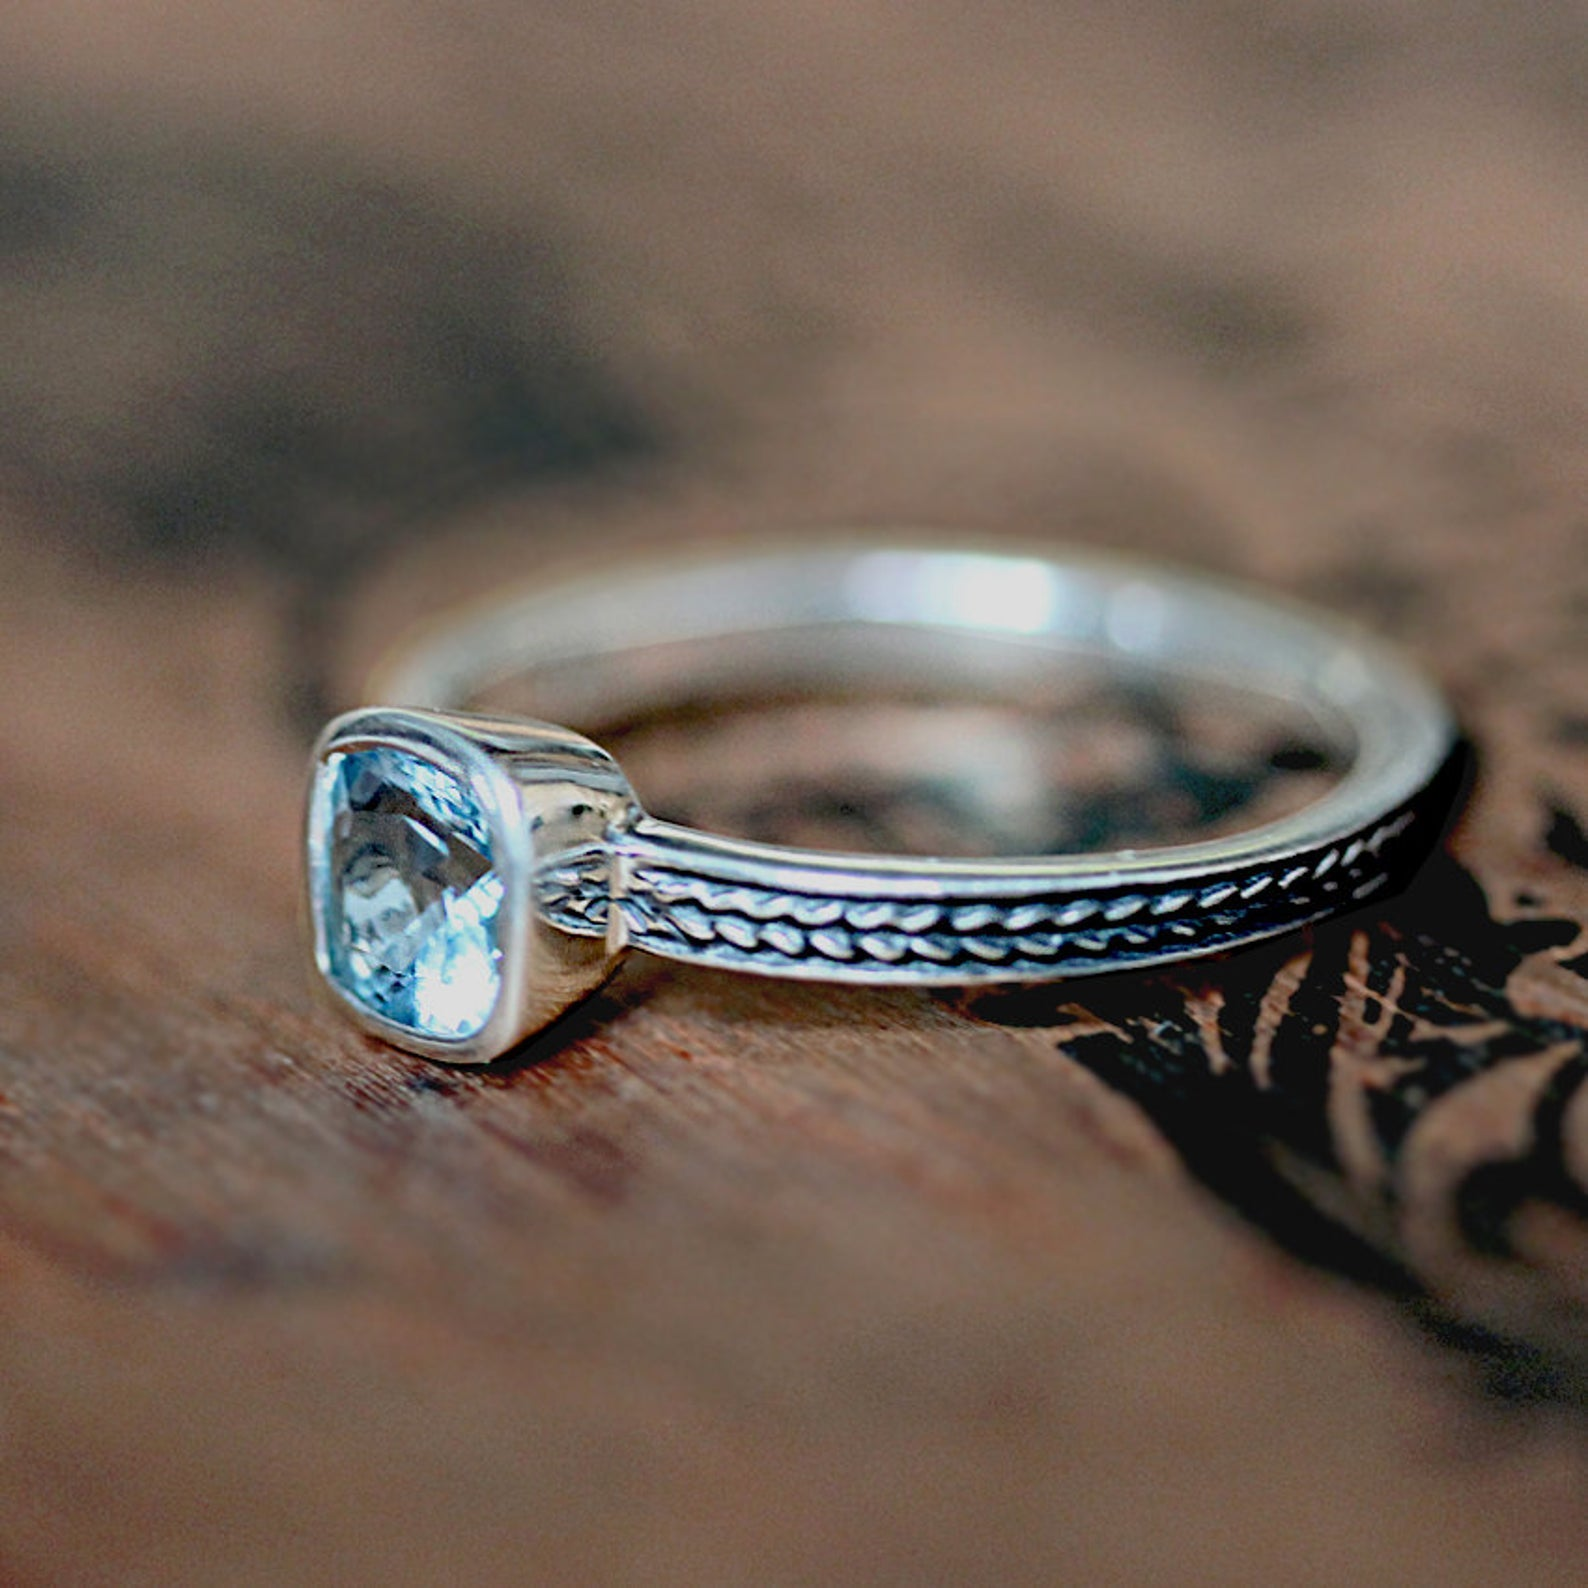 Aquamarine Cushion Cut Ring, Wheat Braid Ring, Ready to Ship Size 5.5